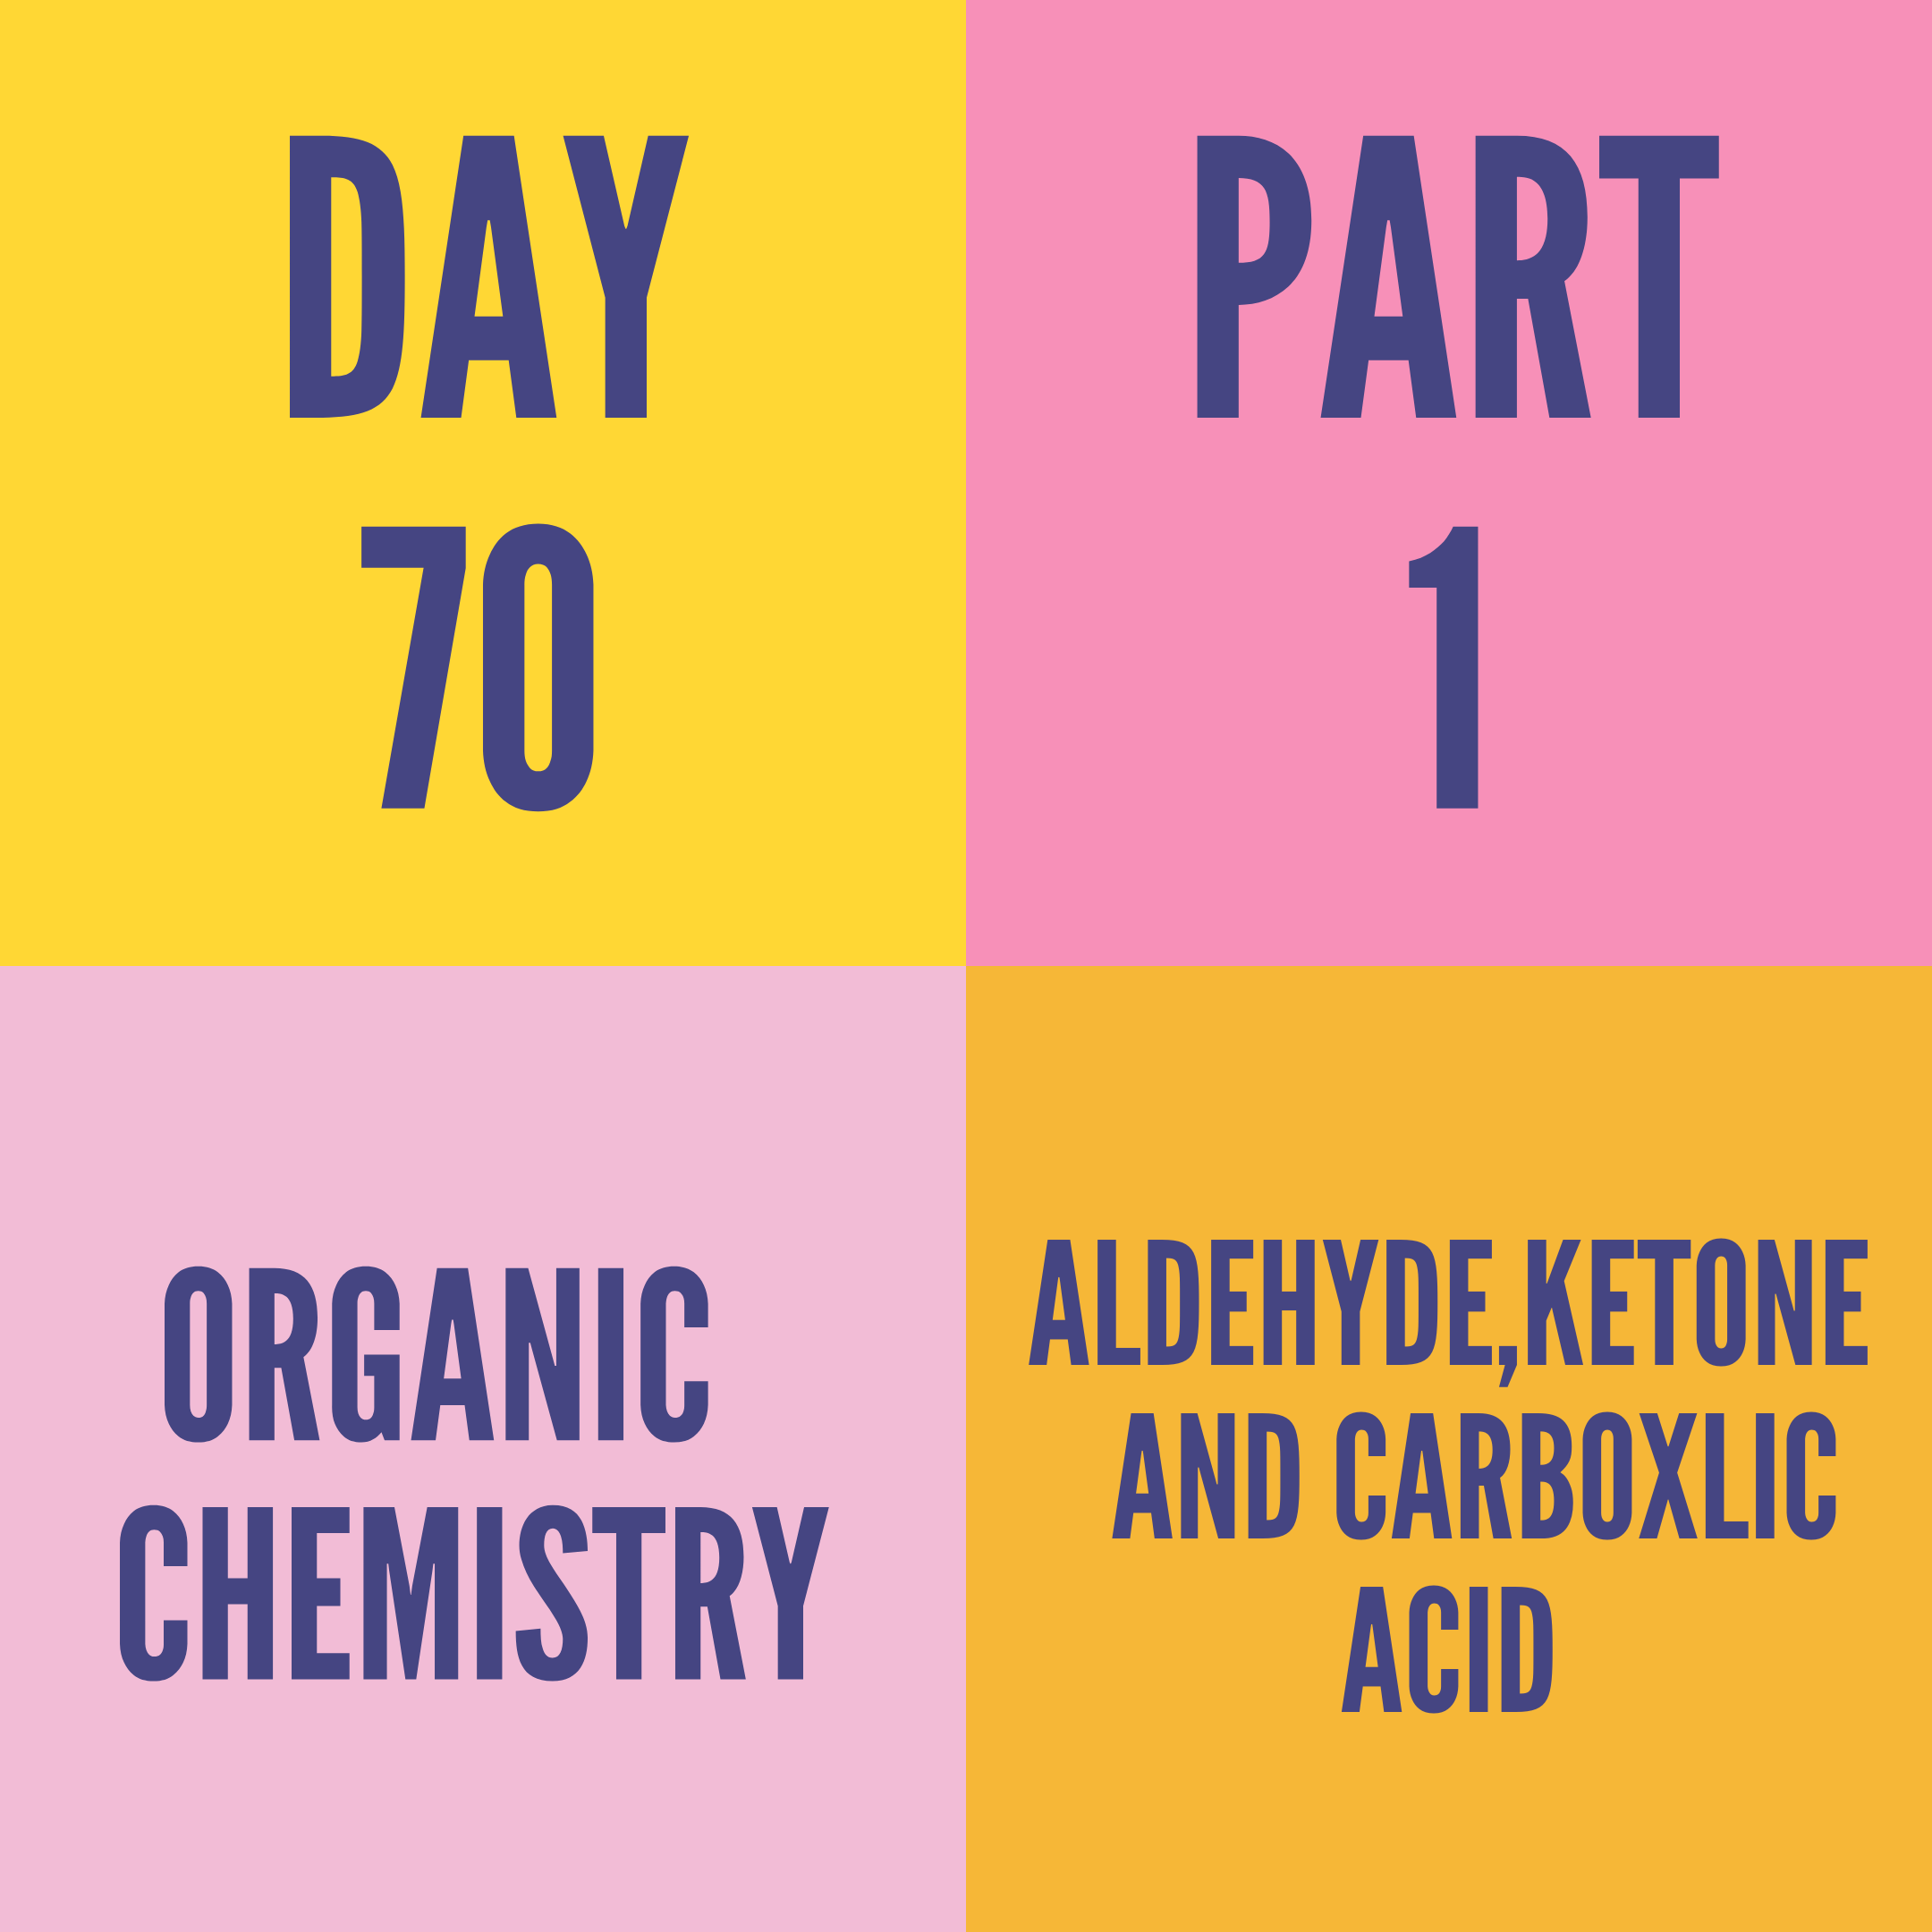 DAY-70 PART-1 ALDEHYDE,KETONE AND CARBOXLIC ACID